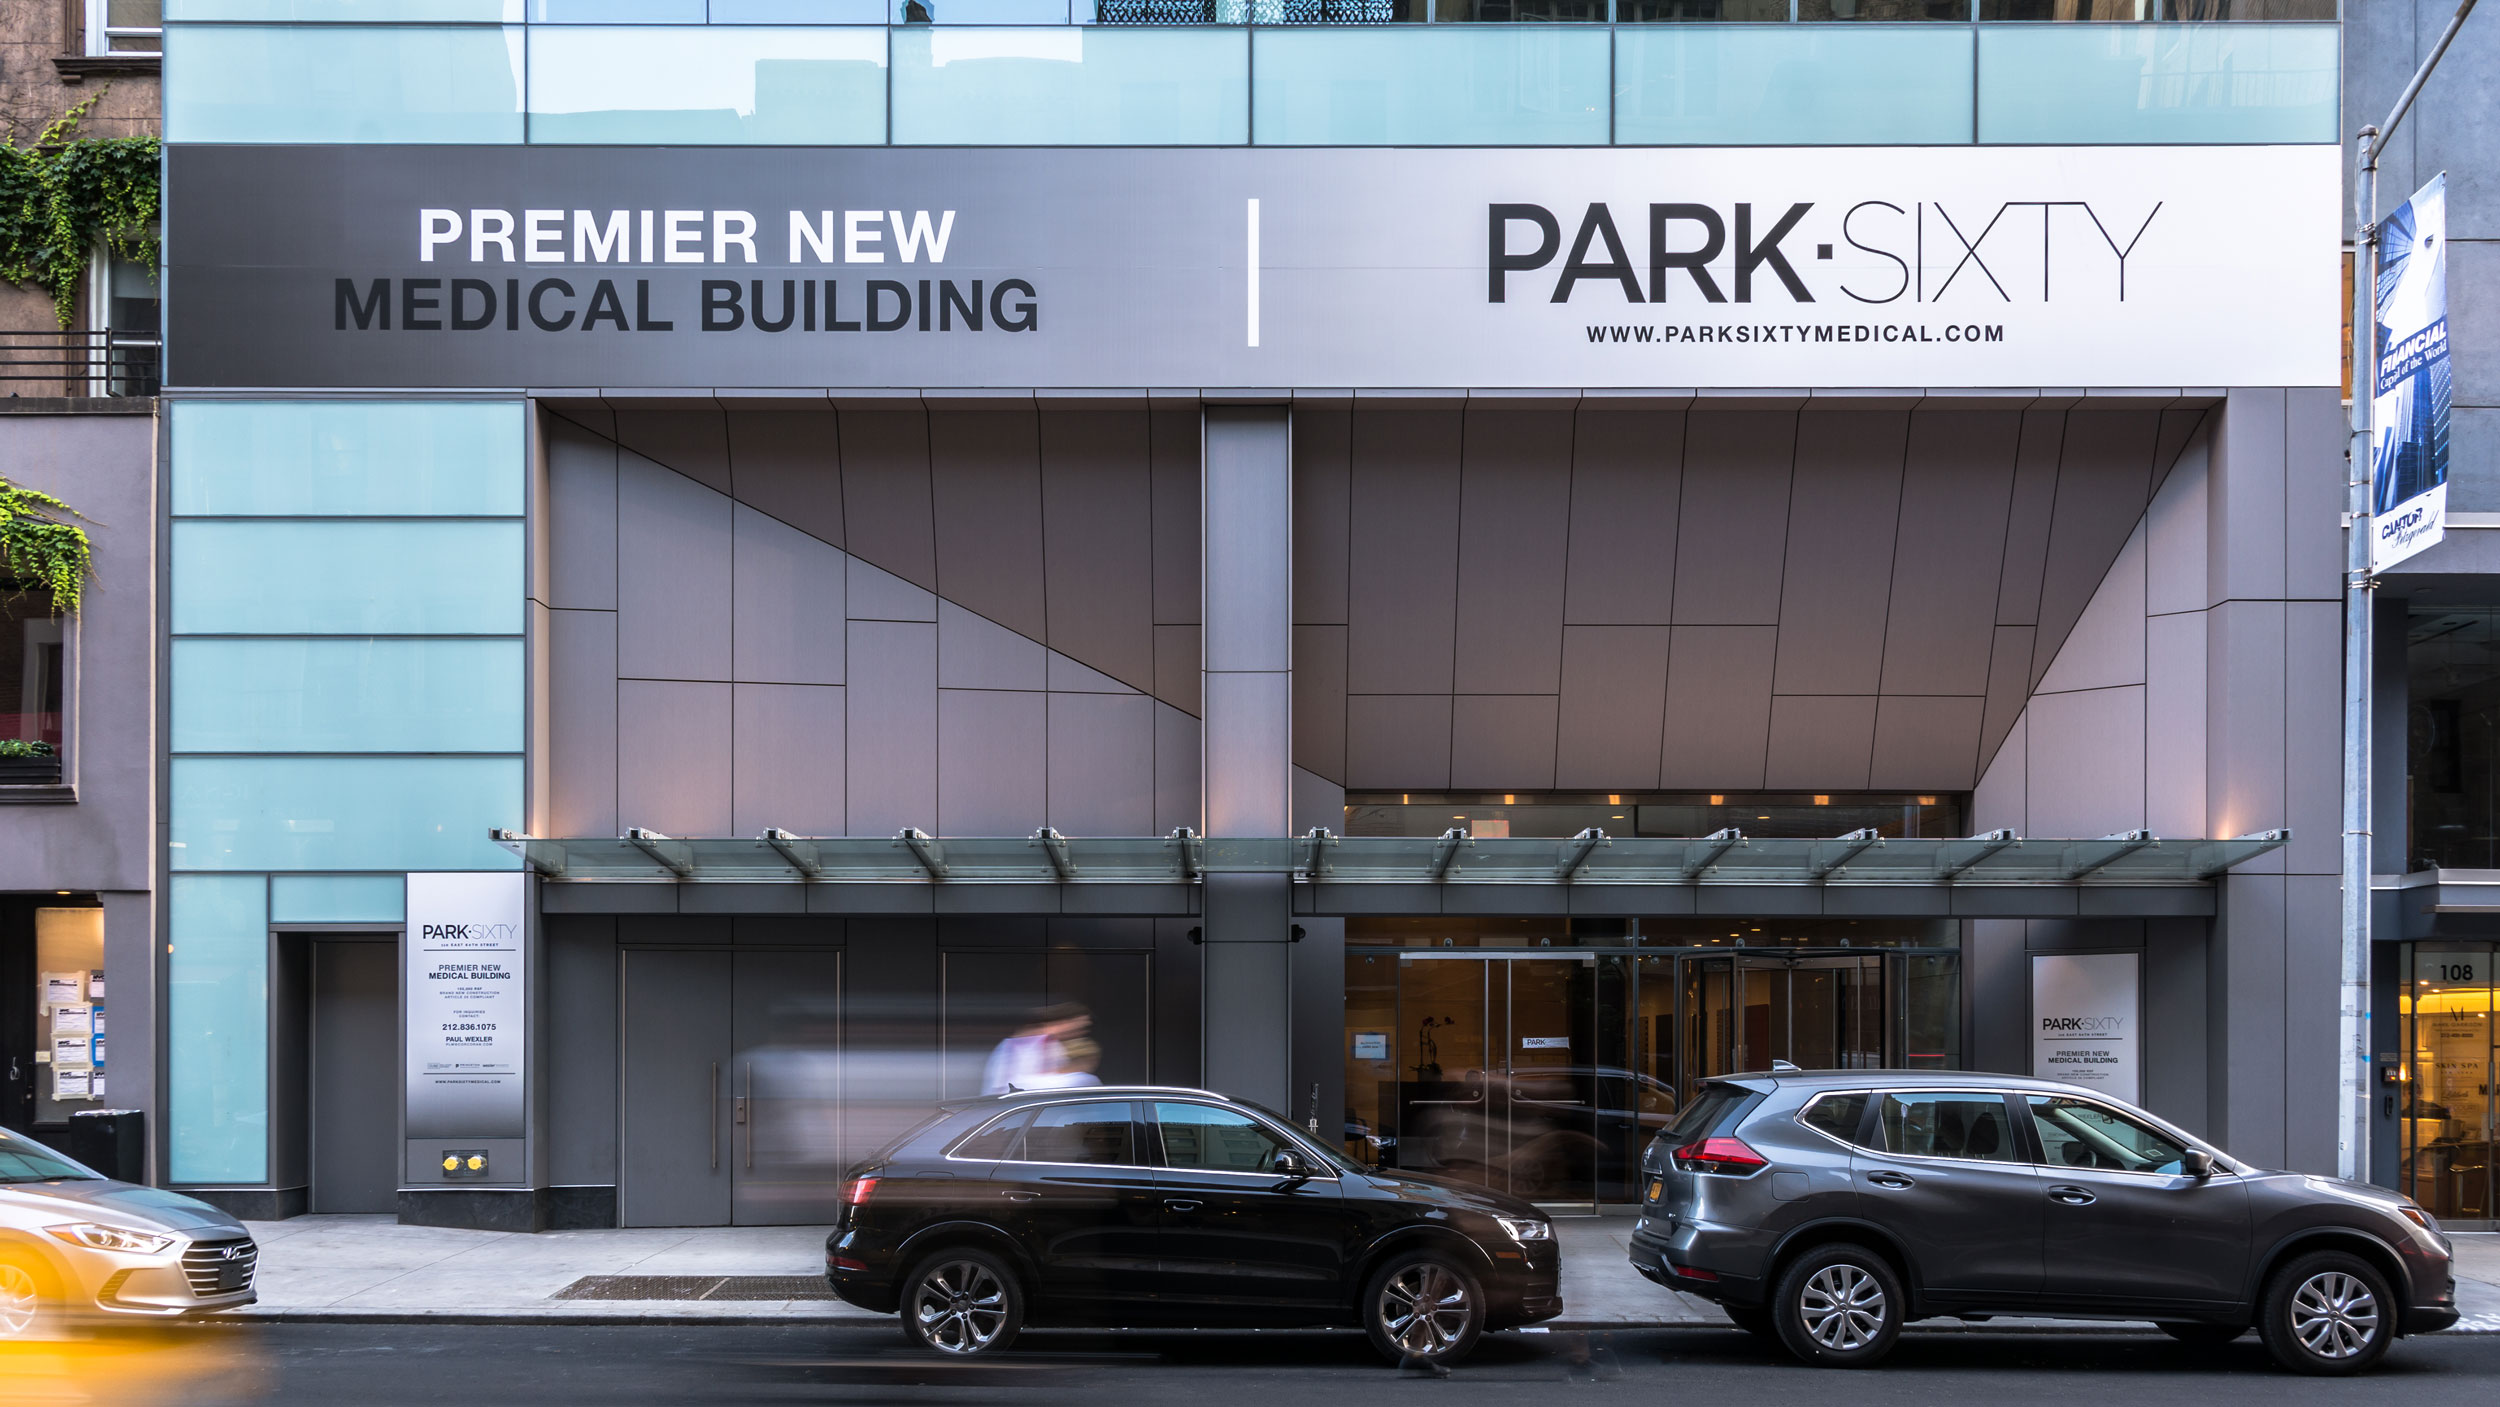 Park Sixty Medical Building, New York, Perkins Eastman, Pure Freeform, Lumiflon USA, Joe Brennan Photo Video